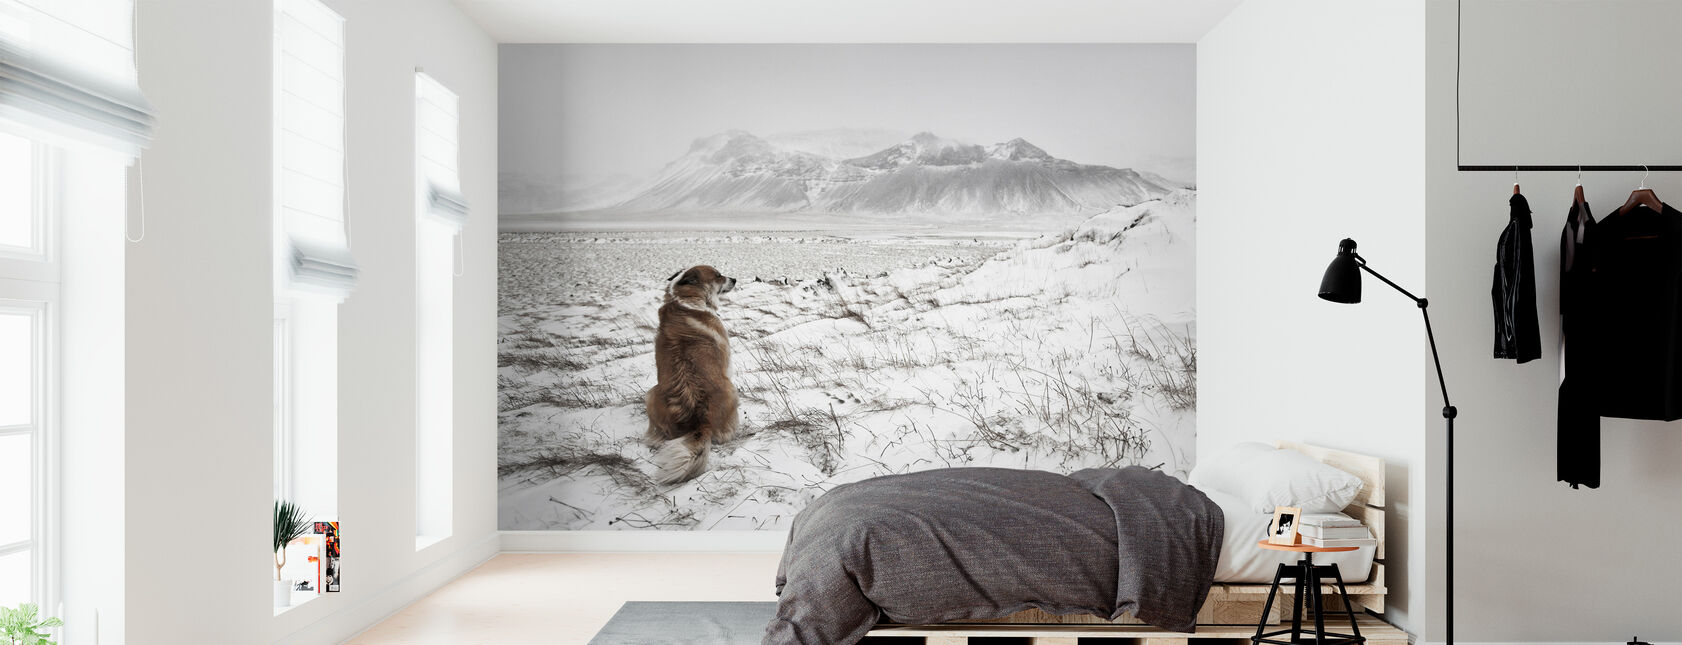 Snowstorm - Wallpaper - Bedroom